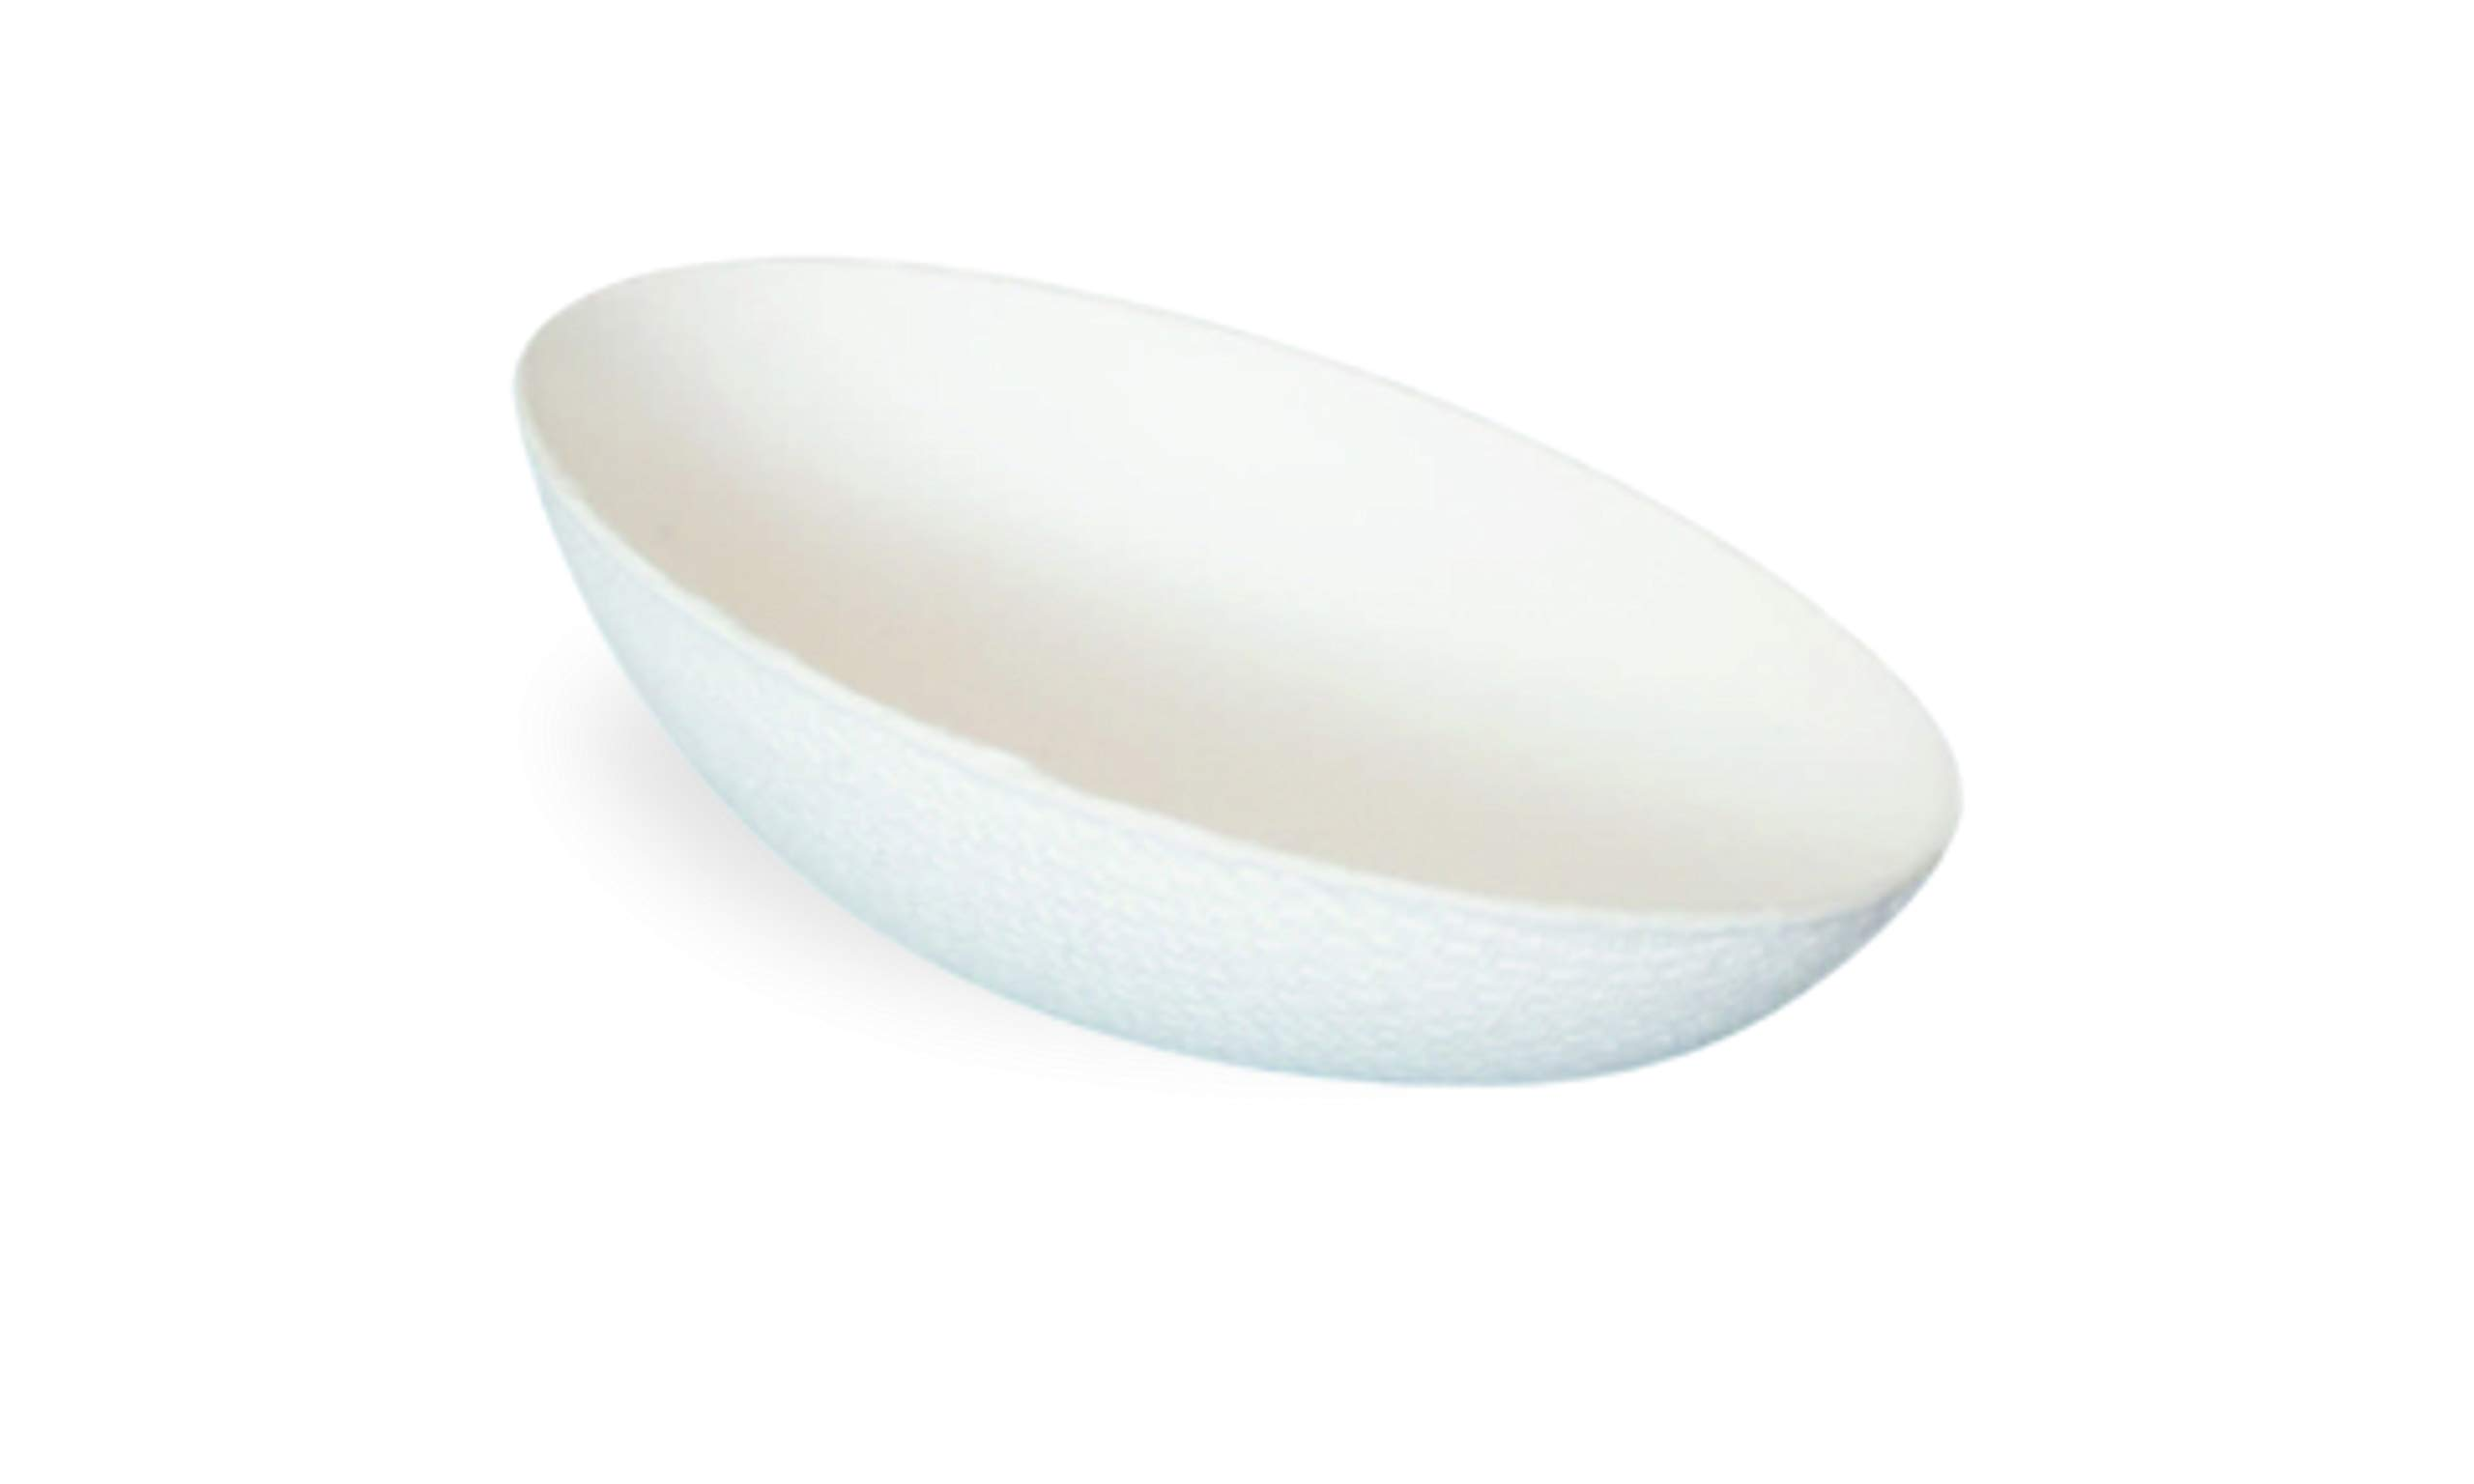 "Bio 'n' Chic Egg Shaped Sugarcane Dish (Case of 300), PacknWood - Small Compostable Plates and Bowls for Appetizer or Dessert (3.9"" x 1.2"") 210BCHICEGG"